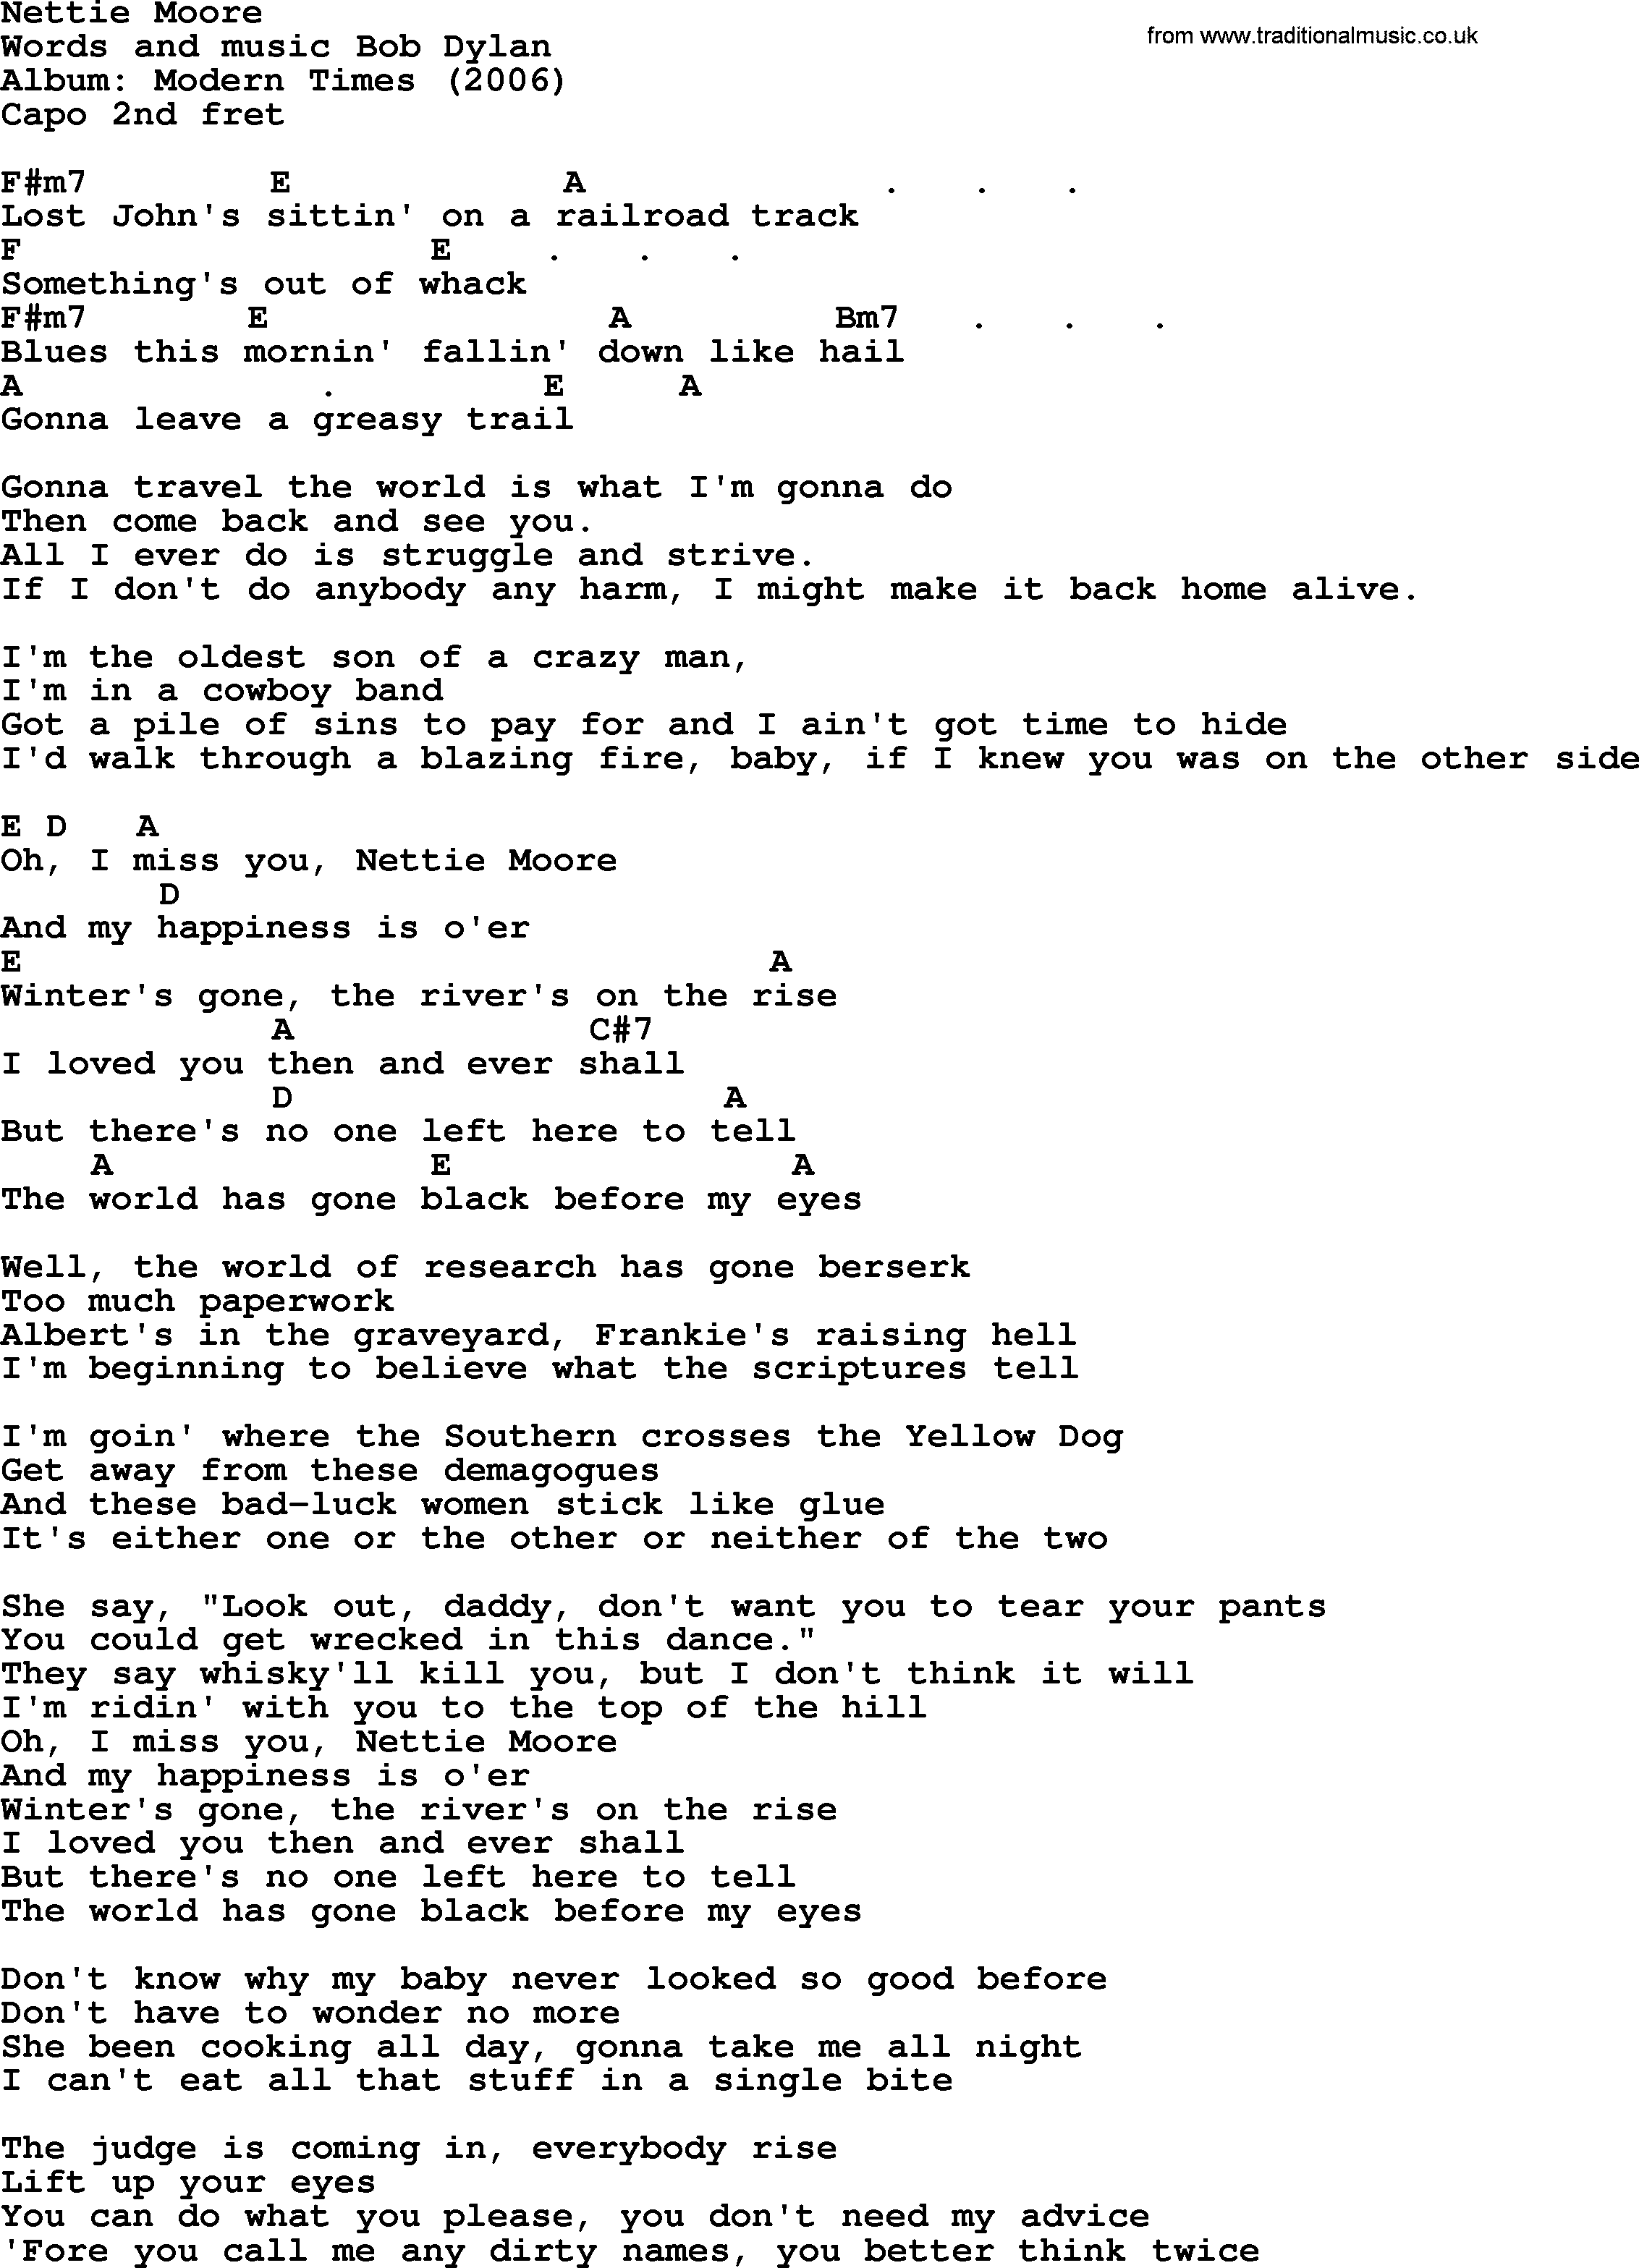 what if the one that got away came back lyrics